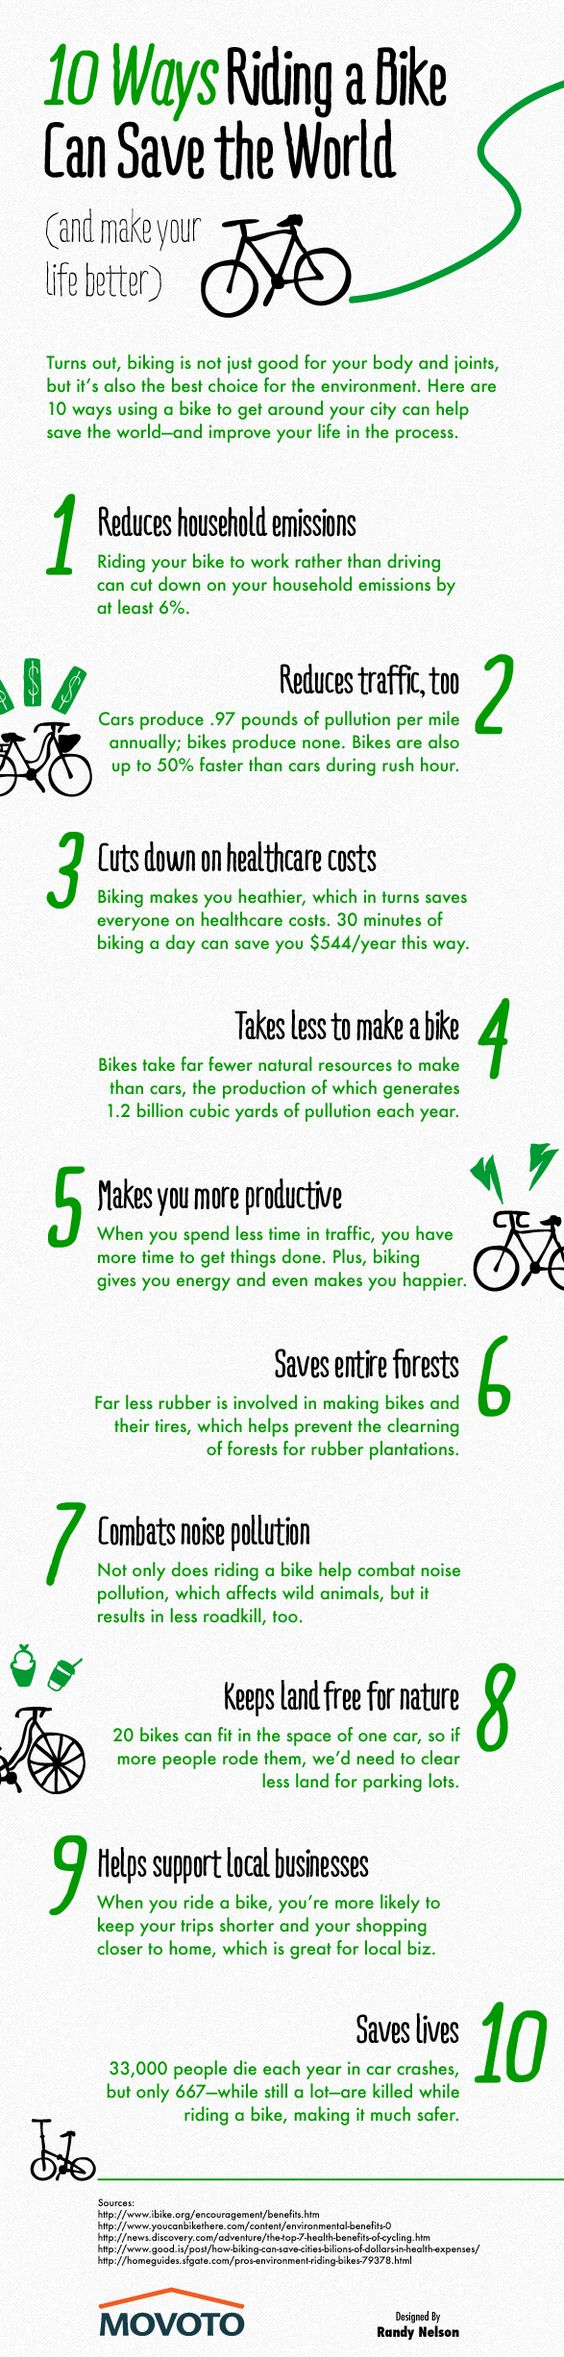 10 Ways Riding A Bike Can Save The World And Make Your Life